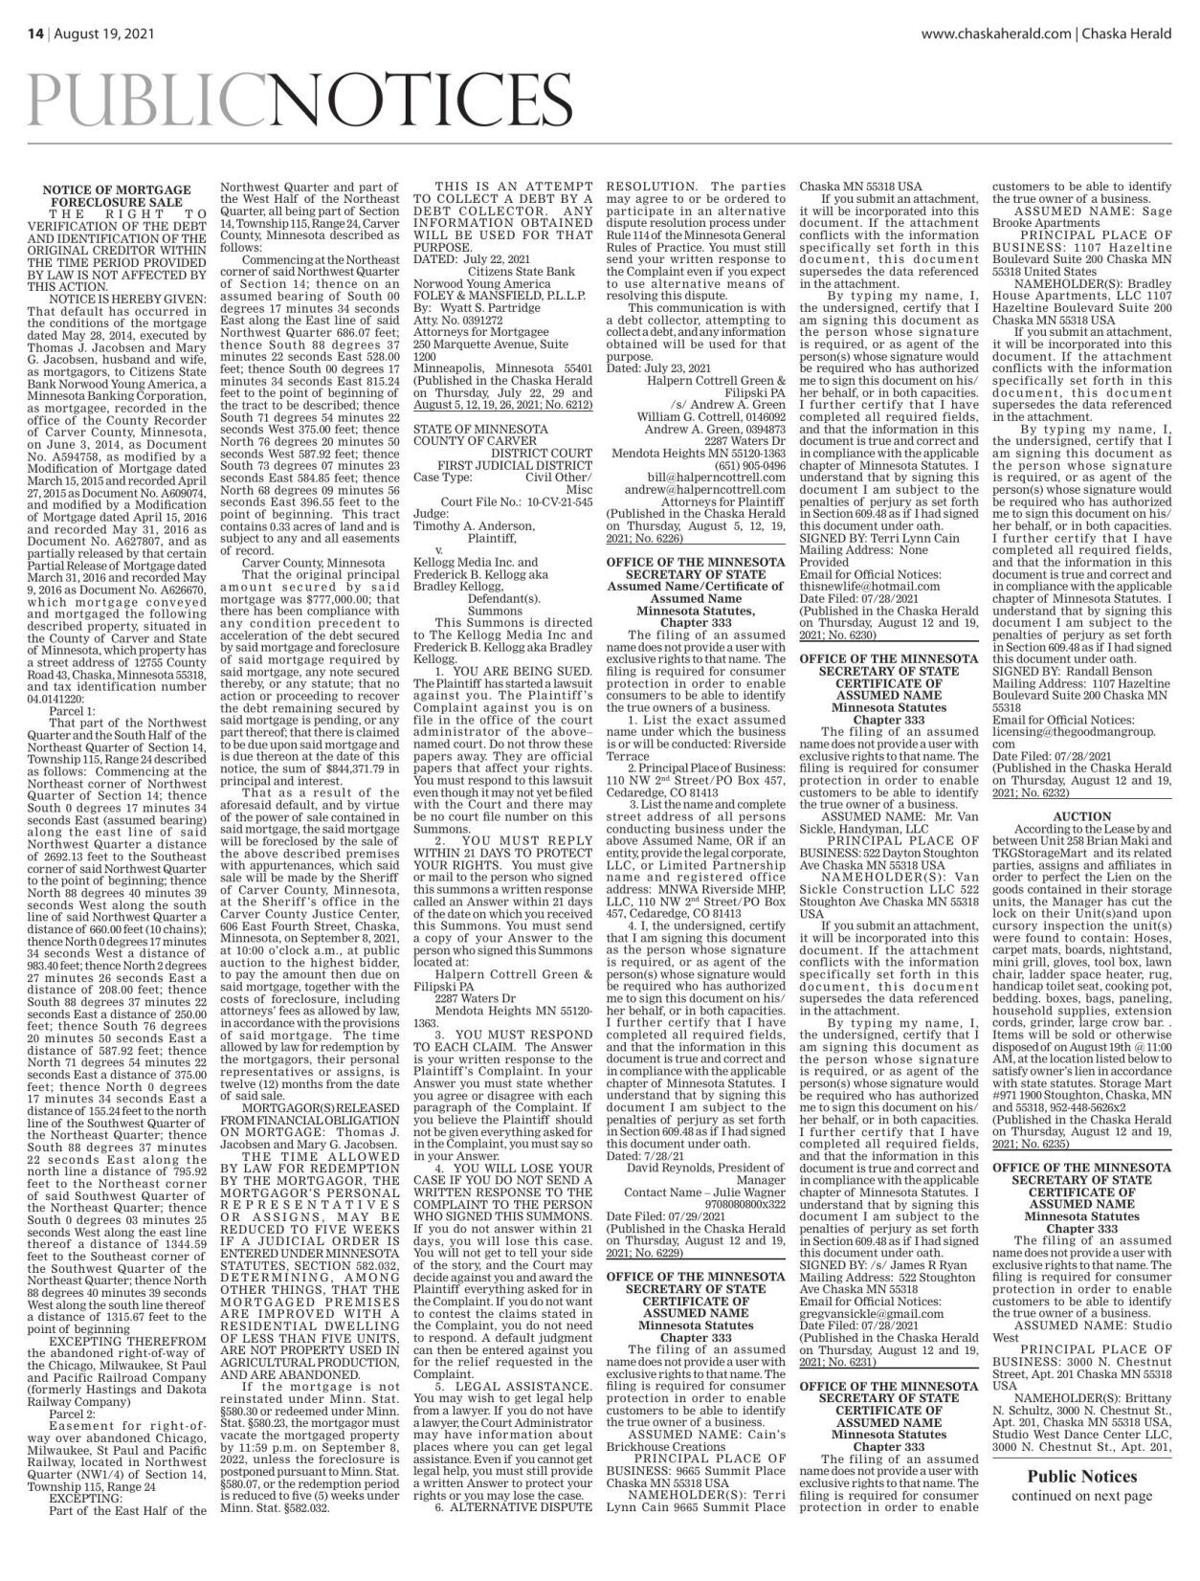 Public Notices from August 19, 2021 Chaska Herald